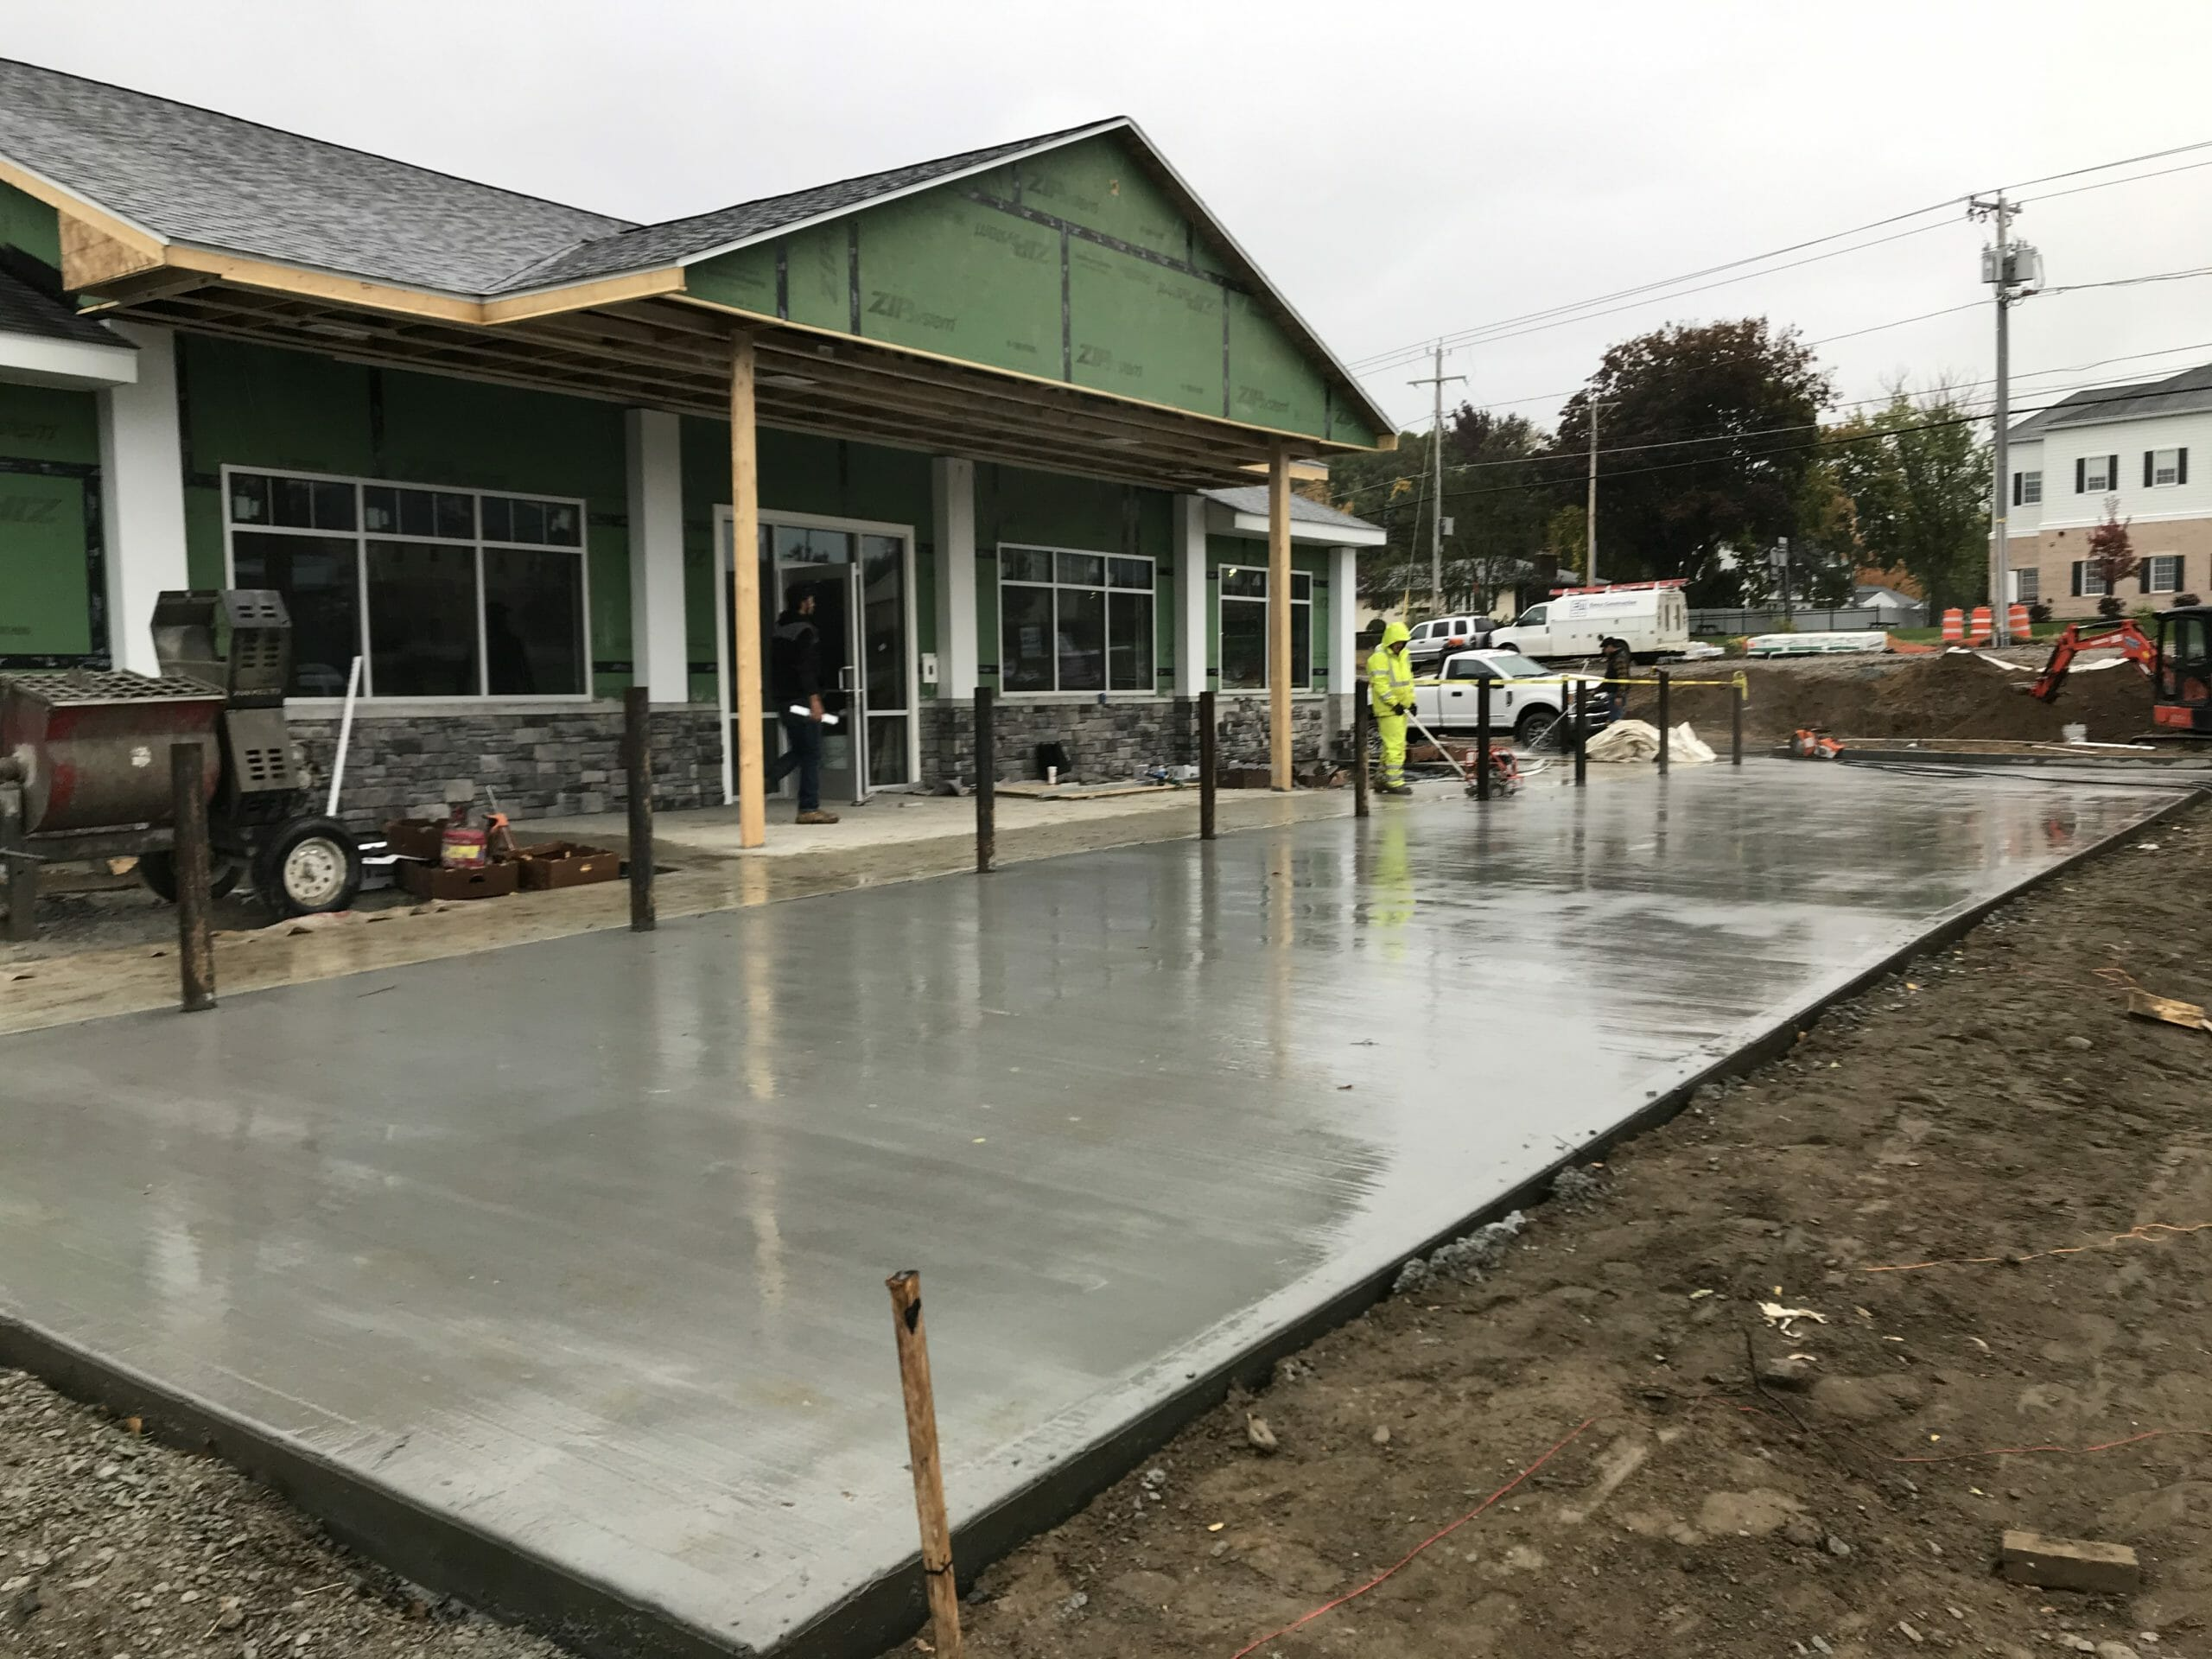 wet concrete in front of shop